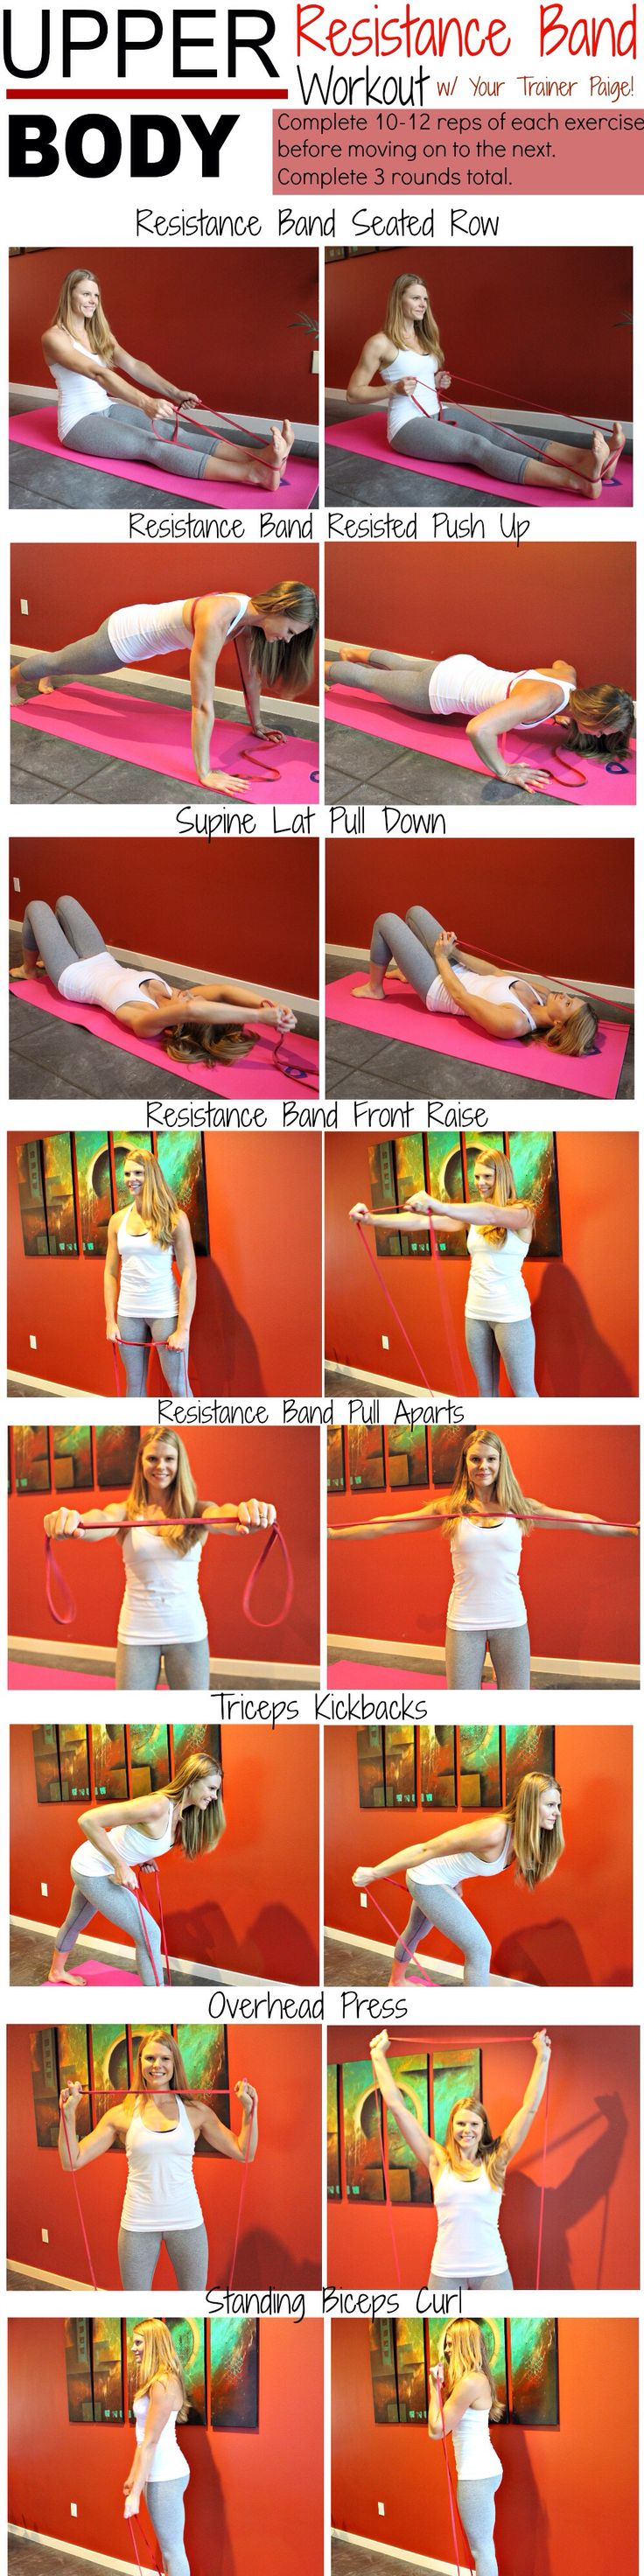 Upper Body Resistance Band Workout